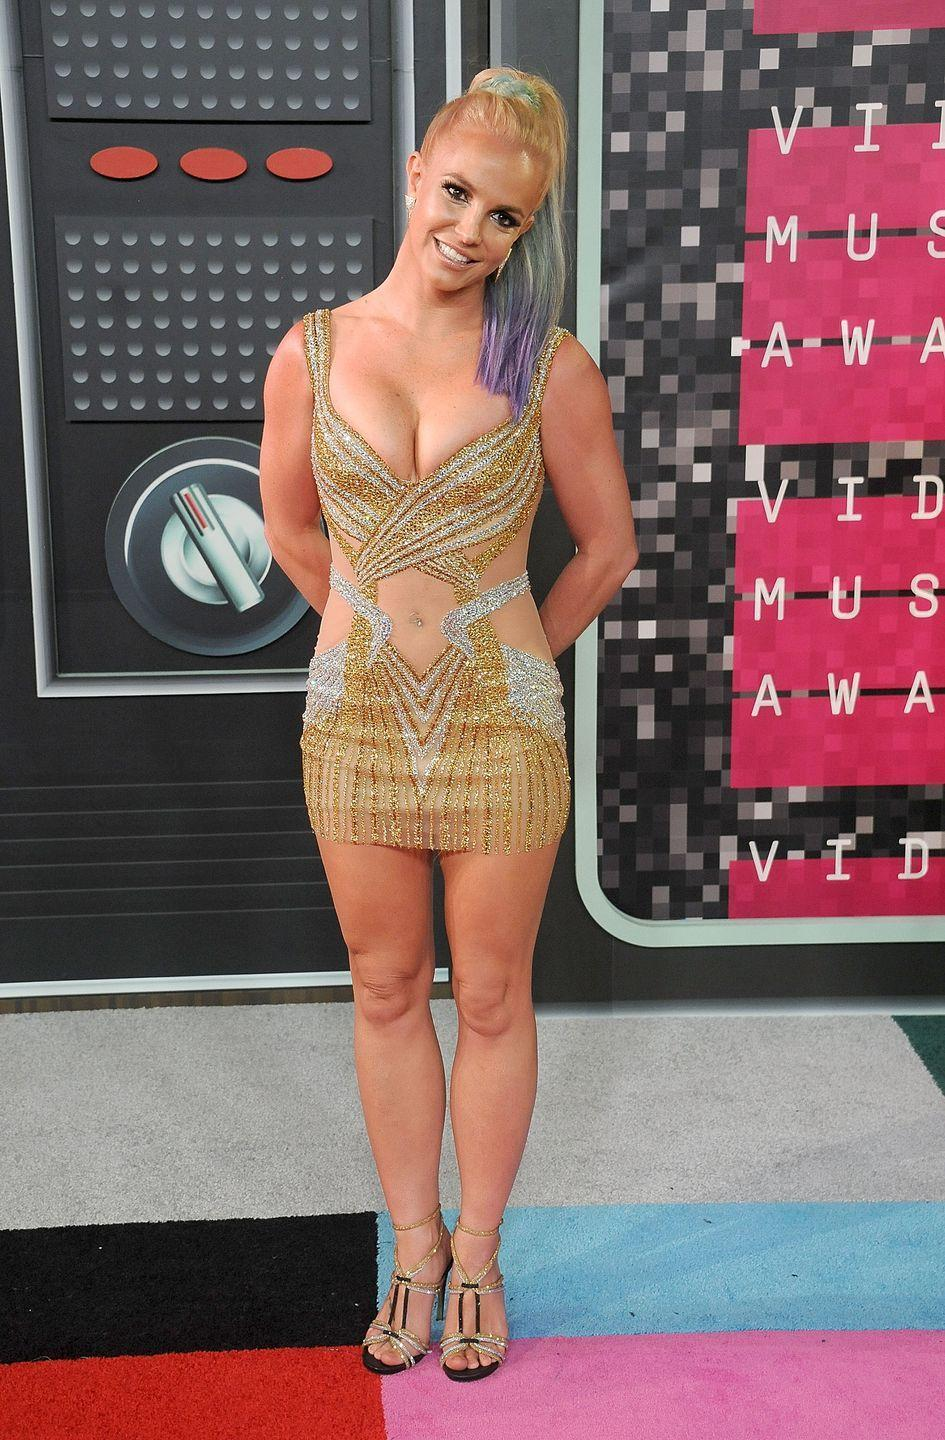 <p>Here, Britney poses in a sparkly gold mini with see-through fabric and a sweetheart neckline. She also had a dyed ponytail that's making me want to make a hair-color appointment, stat. </p>